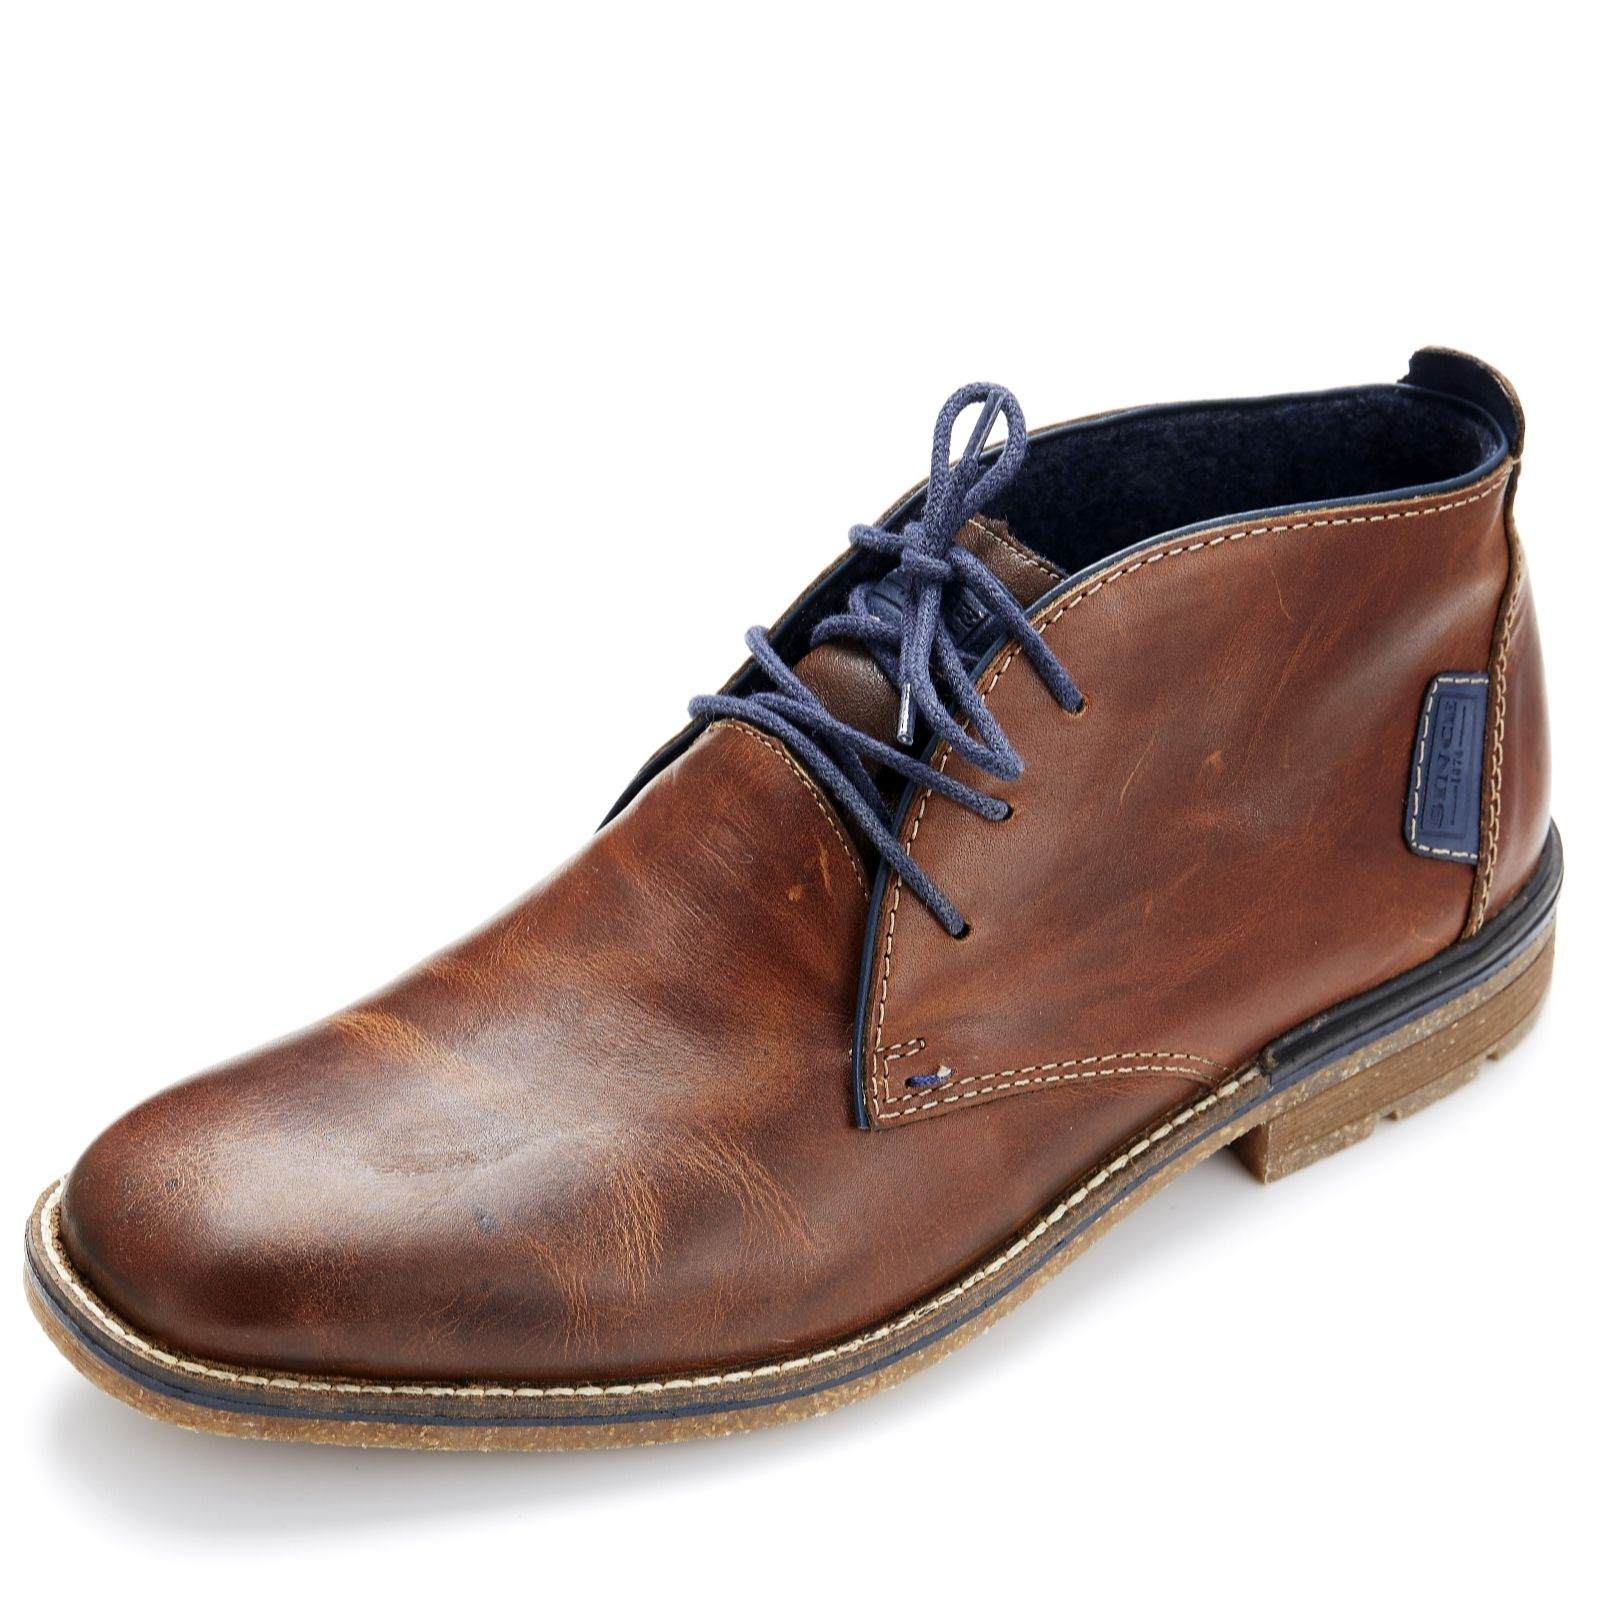 new product 6efcb fd106 Rieker Men's Leather Lace Up Boot - QVC UK